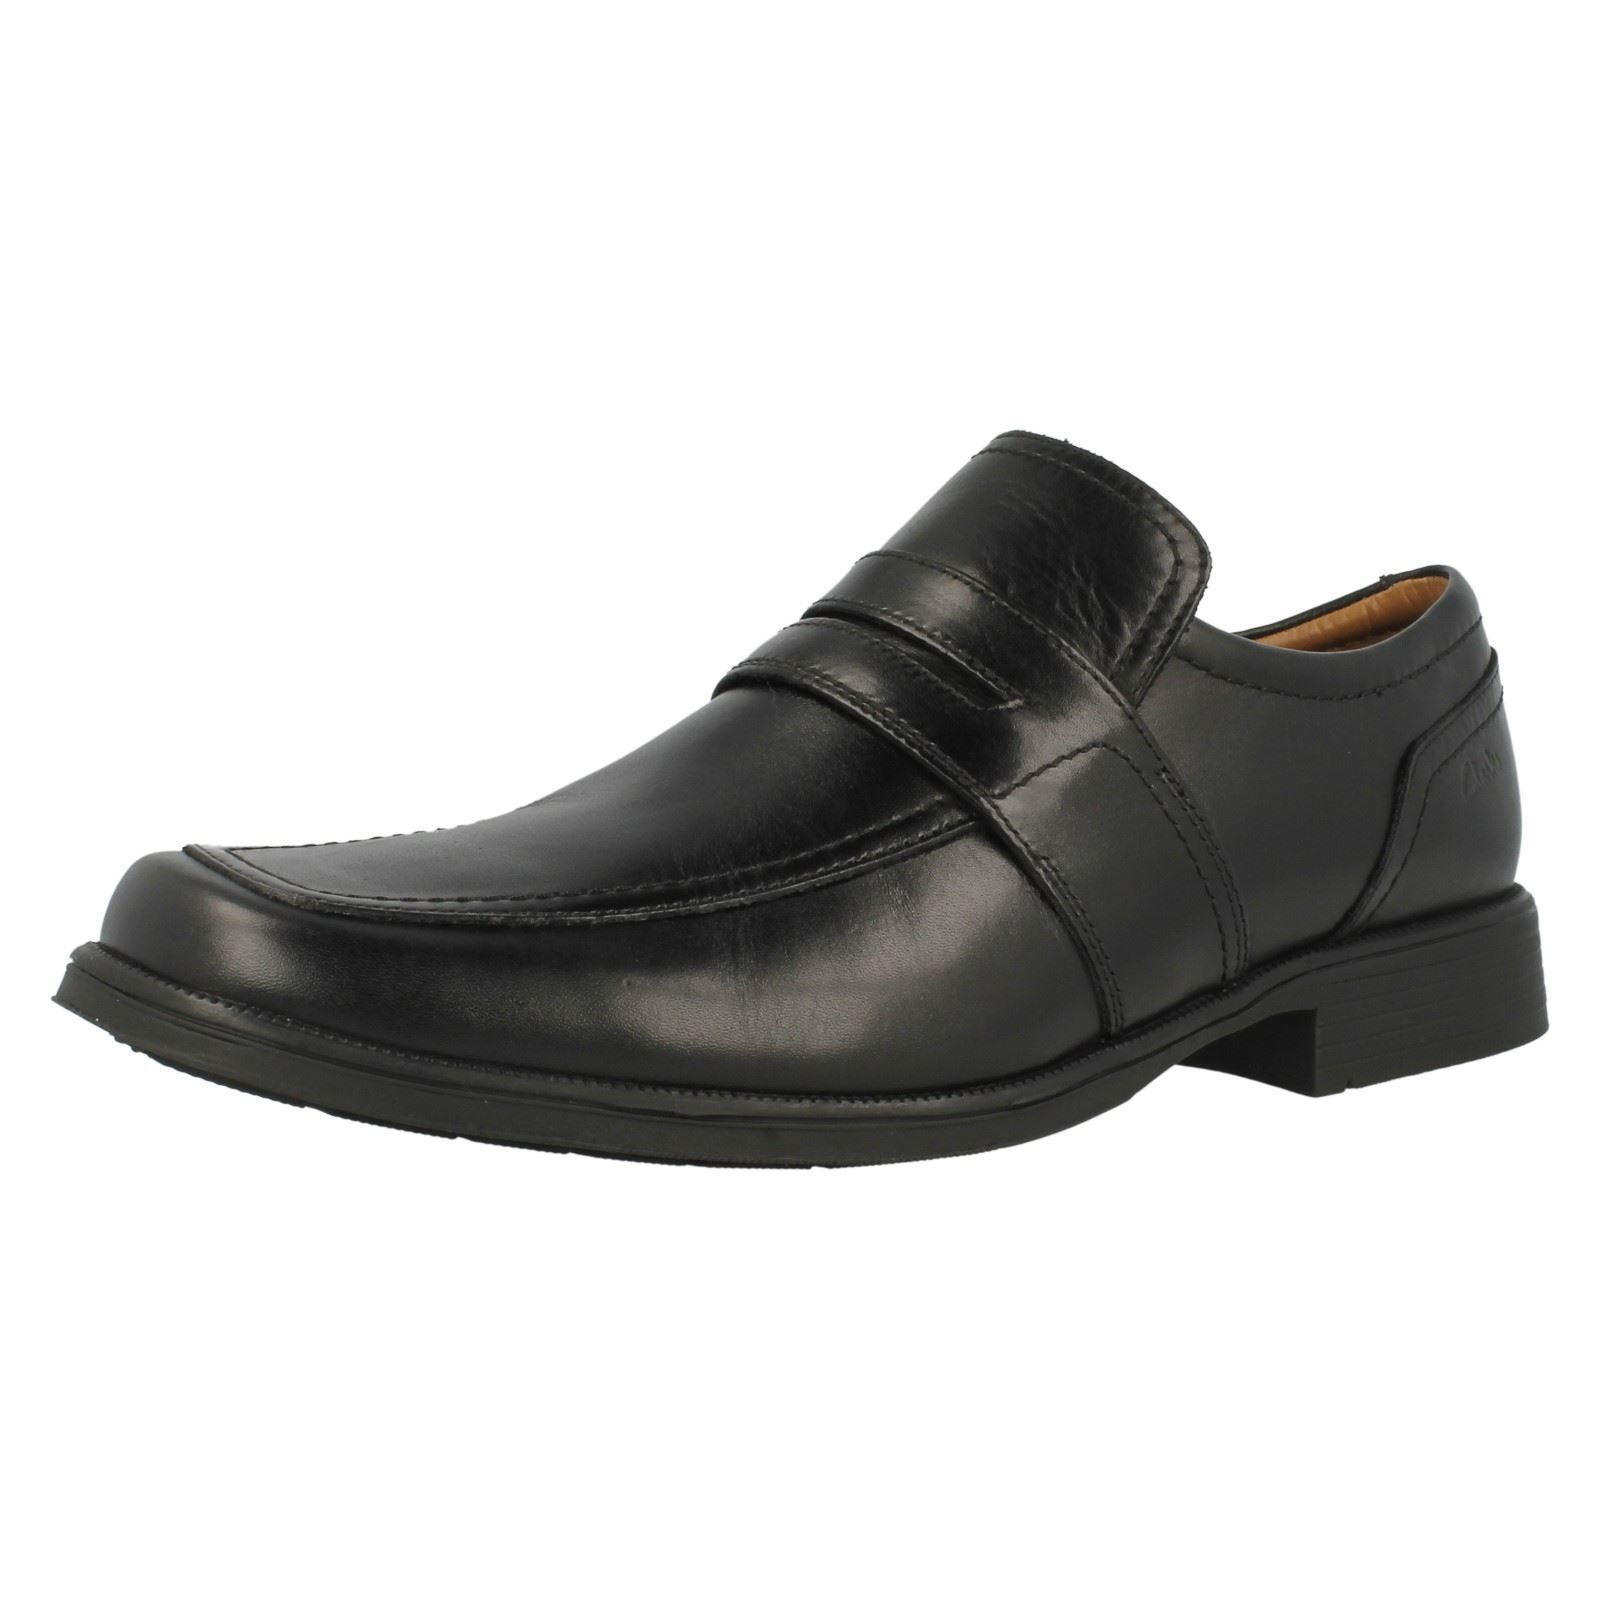 Herren Clarks huckley Works schwarzes Leder elegant Slip On Schuhe G PASSFORM